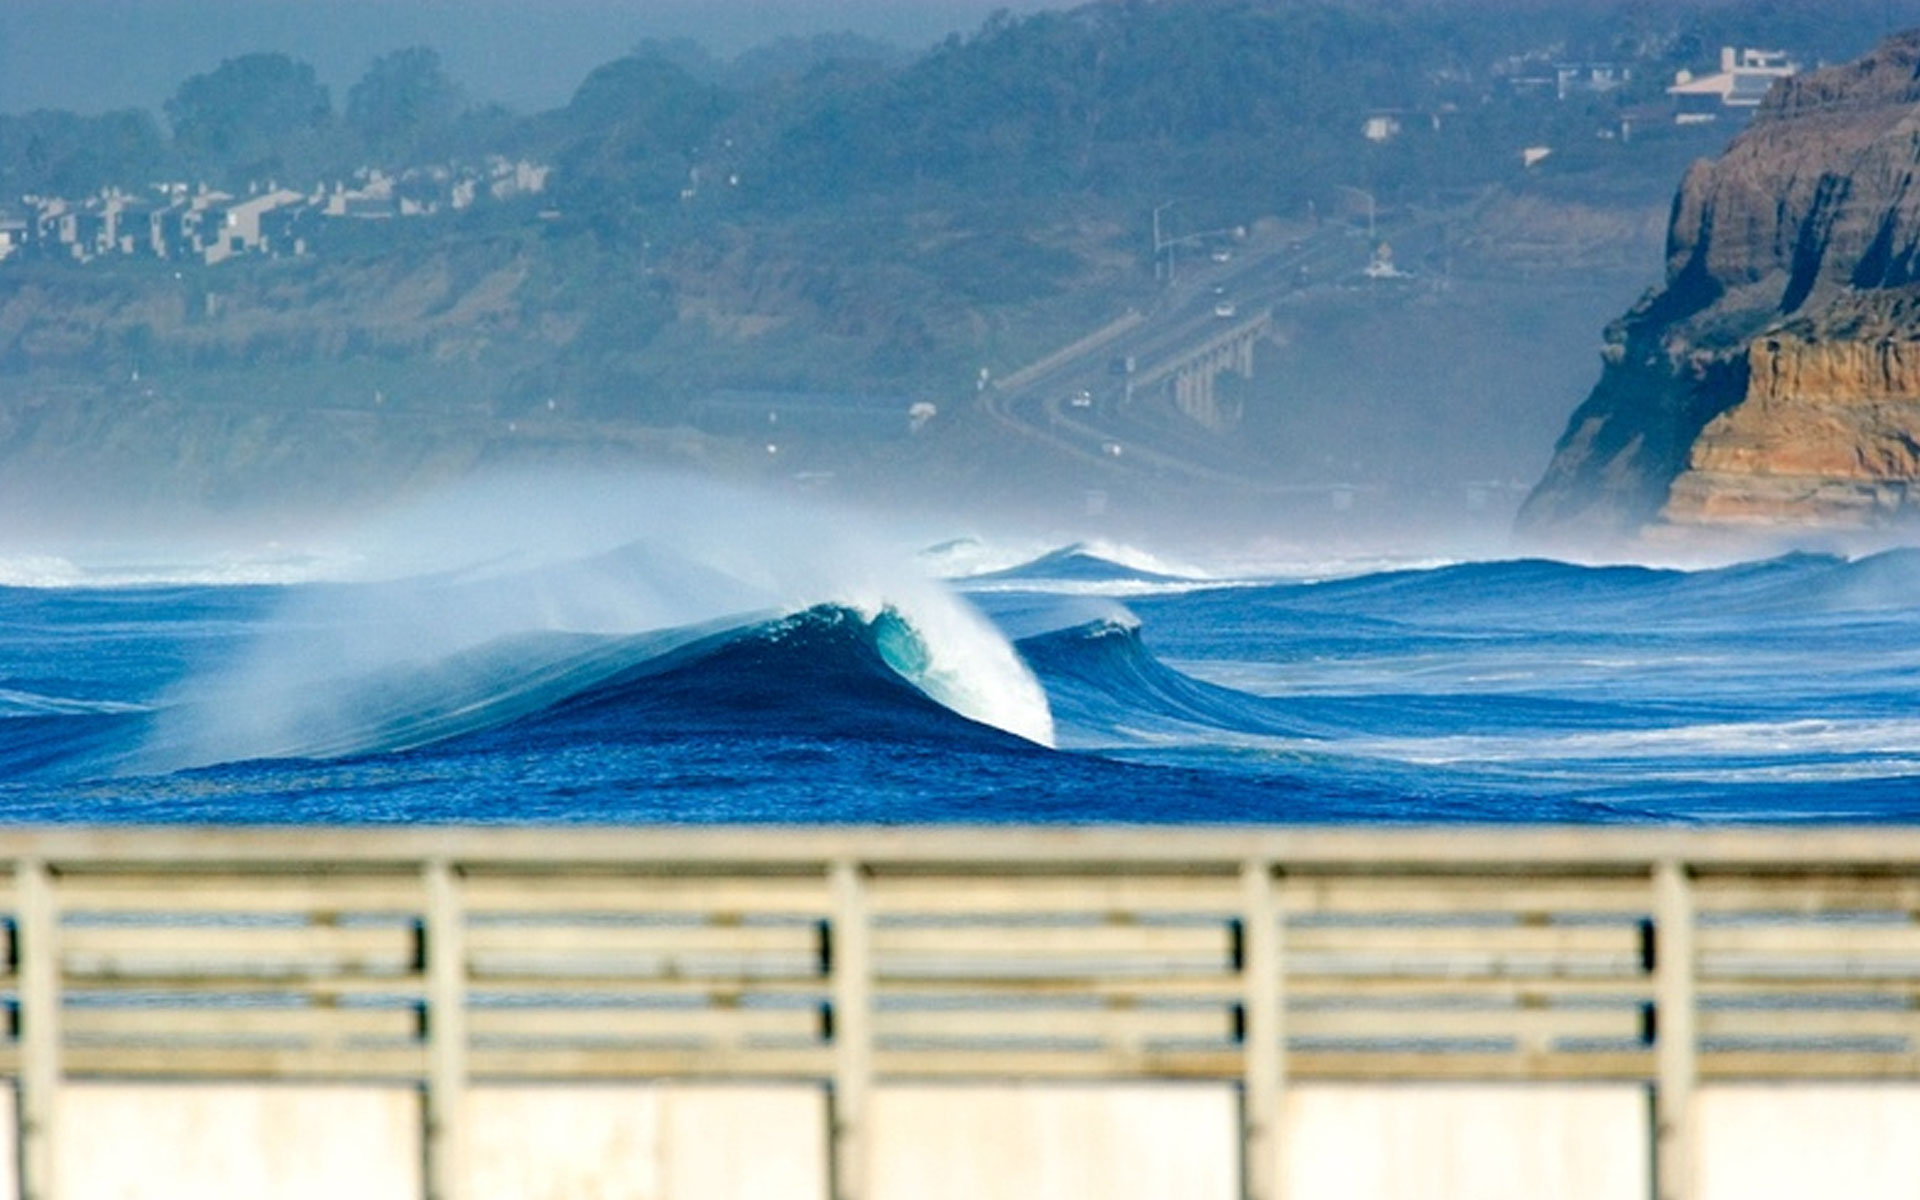 for surfers like ourselves